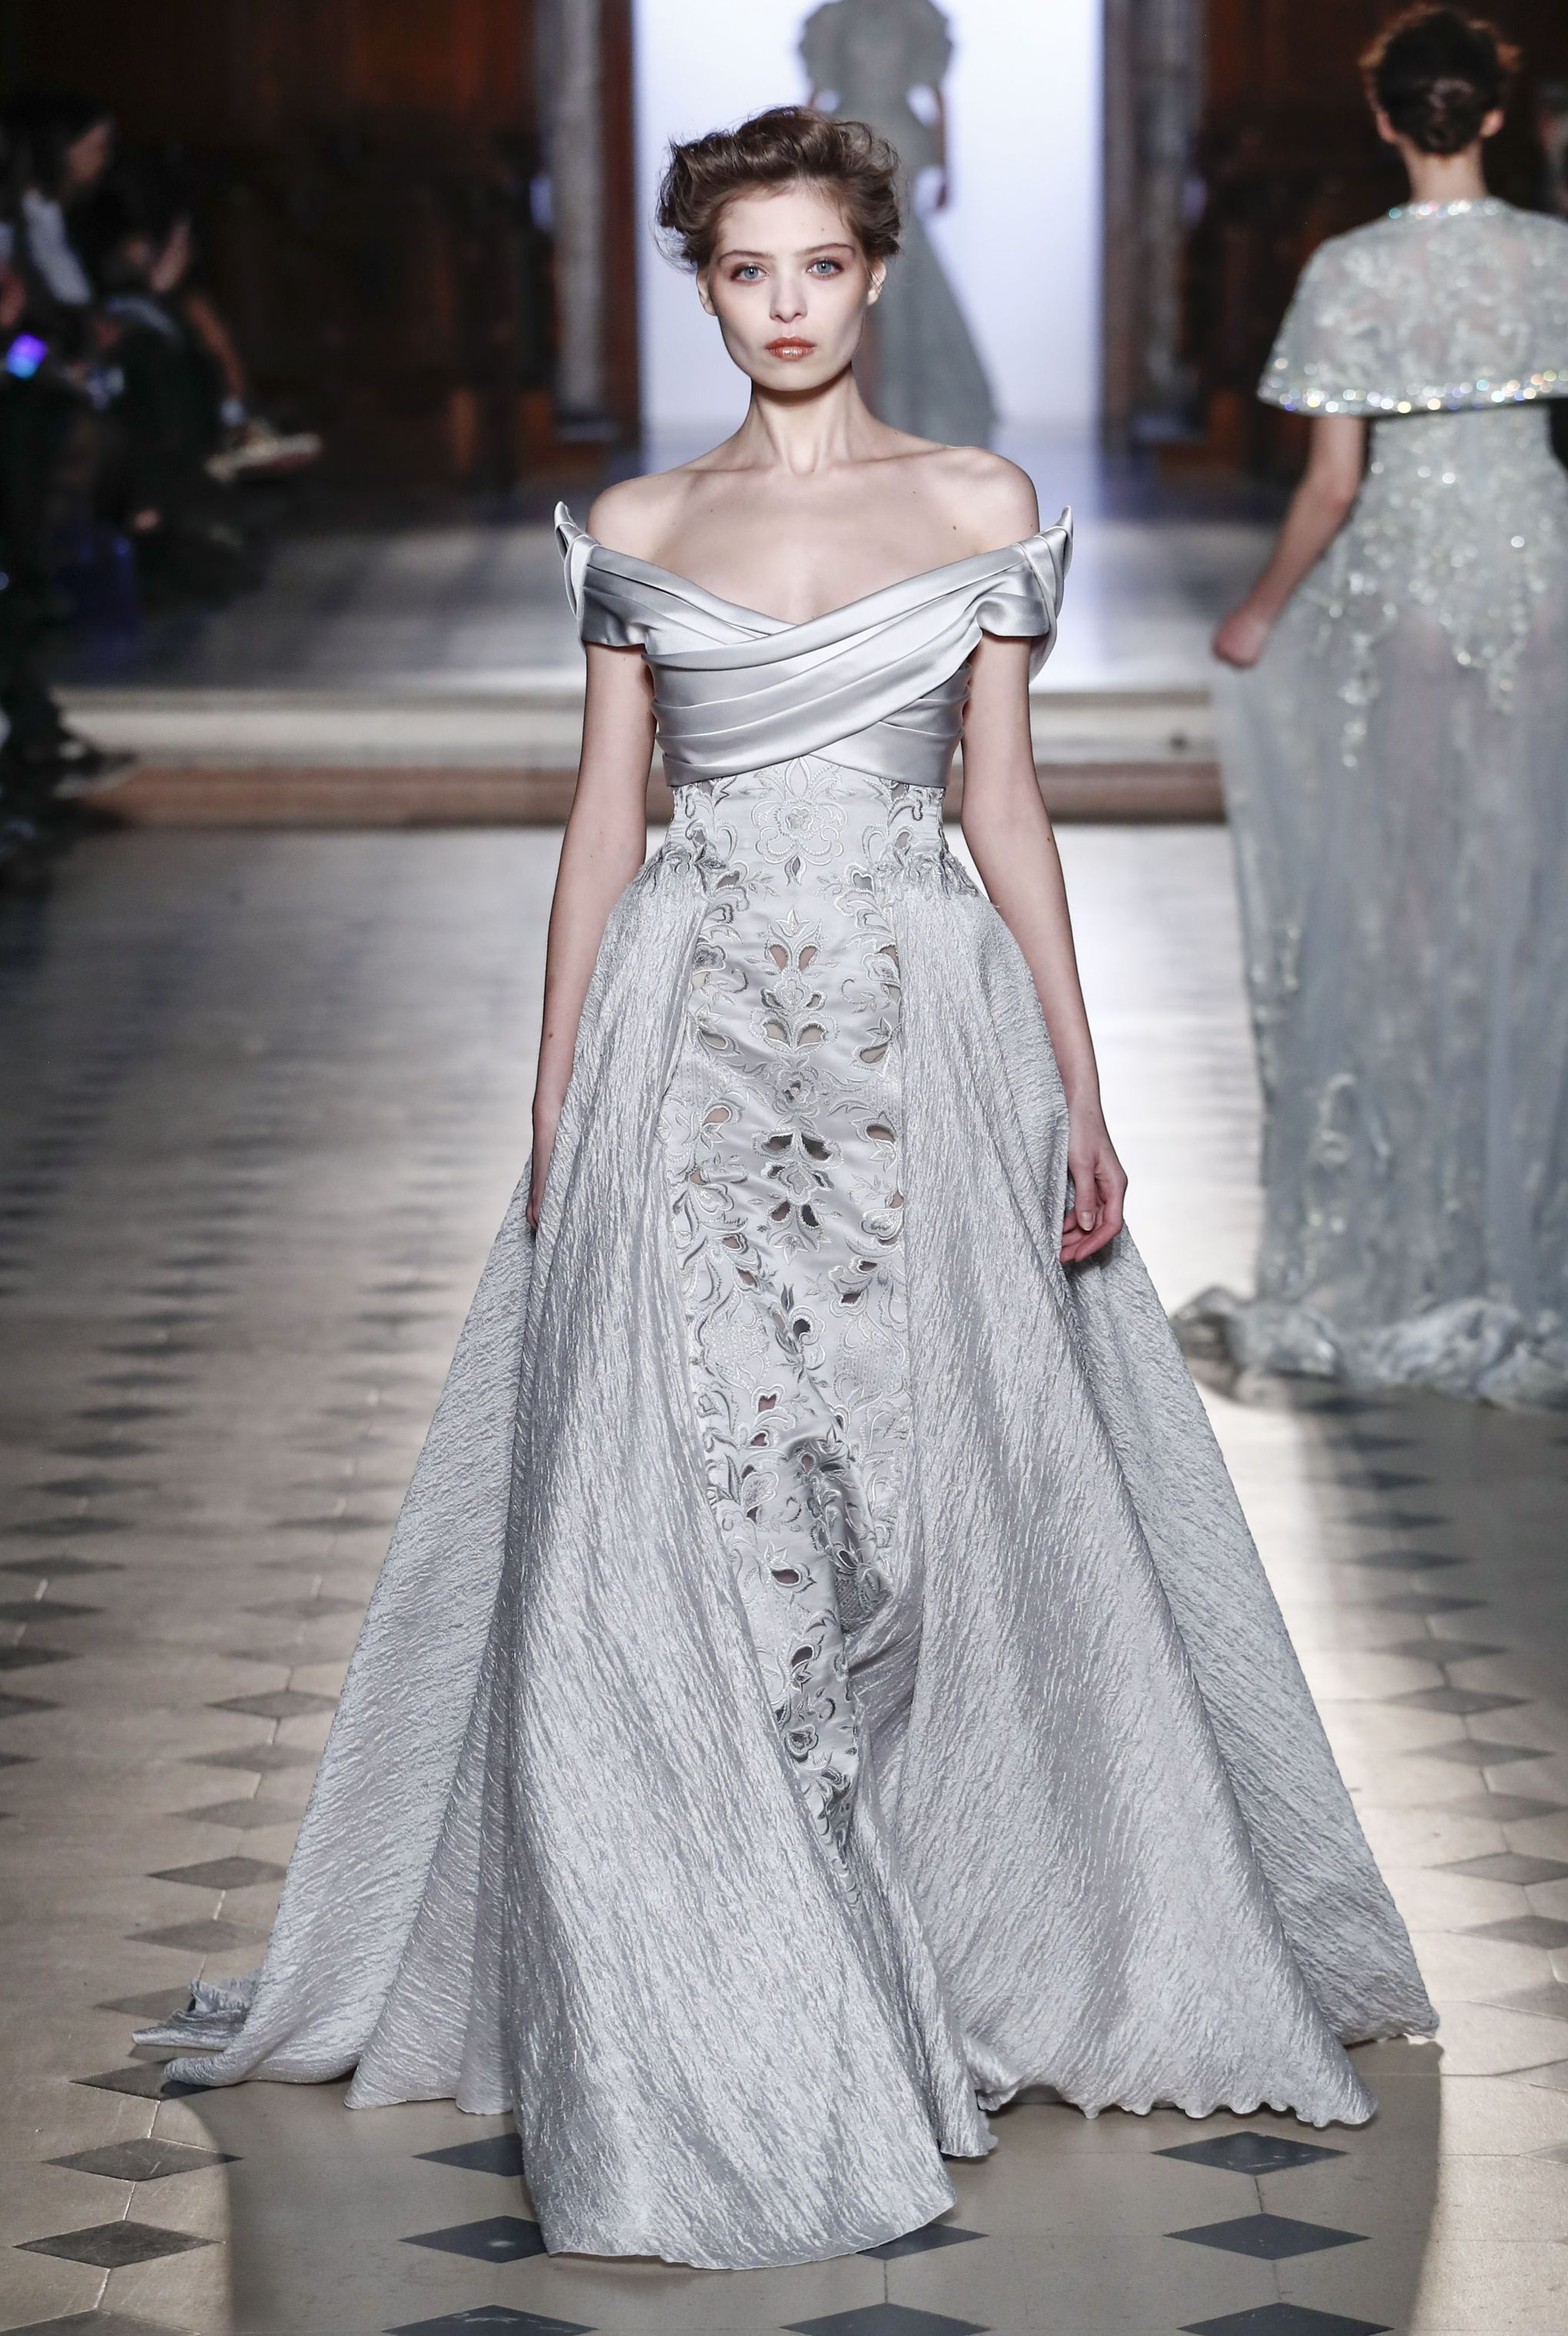 Alternative wedding dresses tony ward wedding dresses catwalks designer tony ward wedding dress from the springsummer 2017 couture catwalks on vogue alternative ombrellifo Image collections